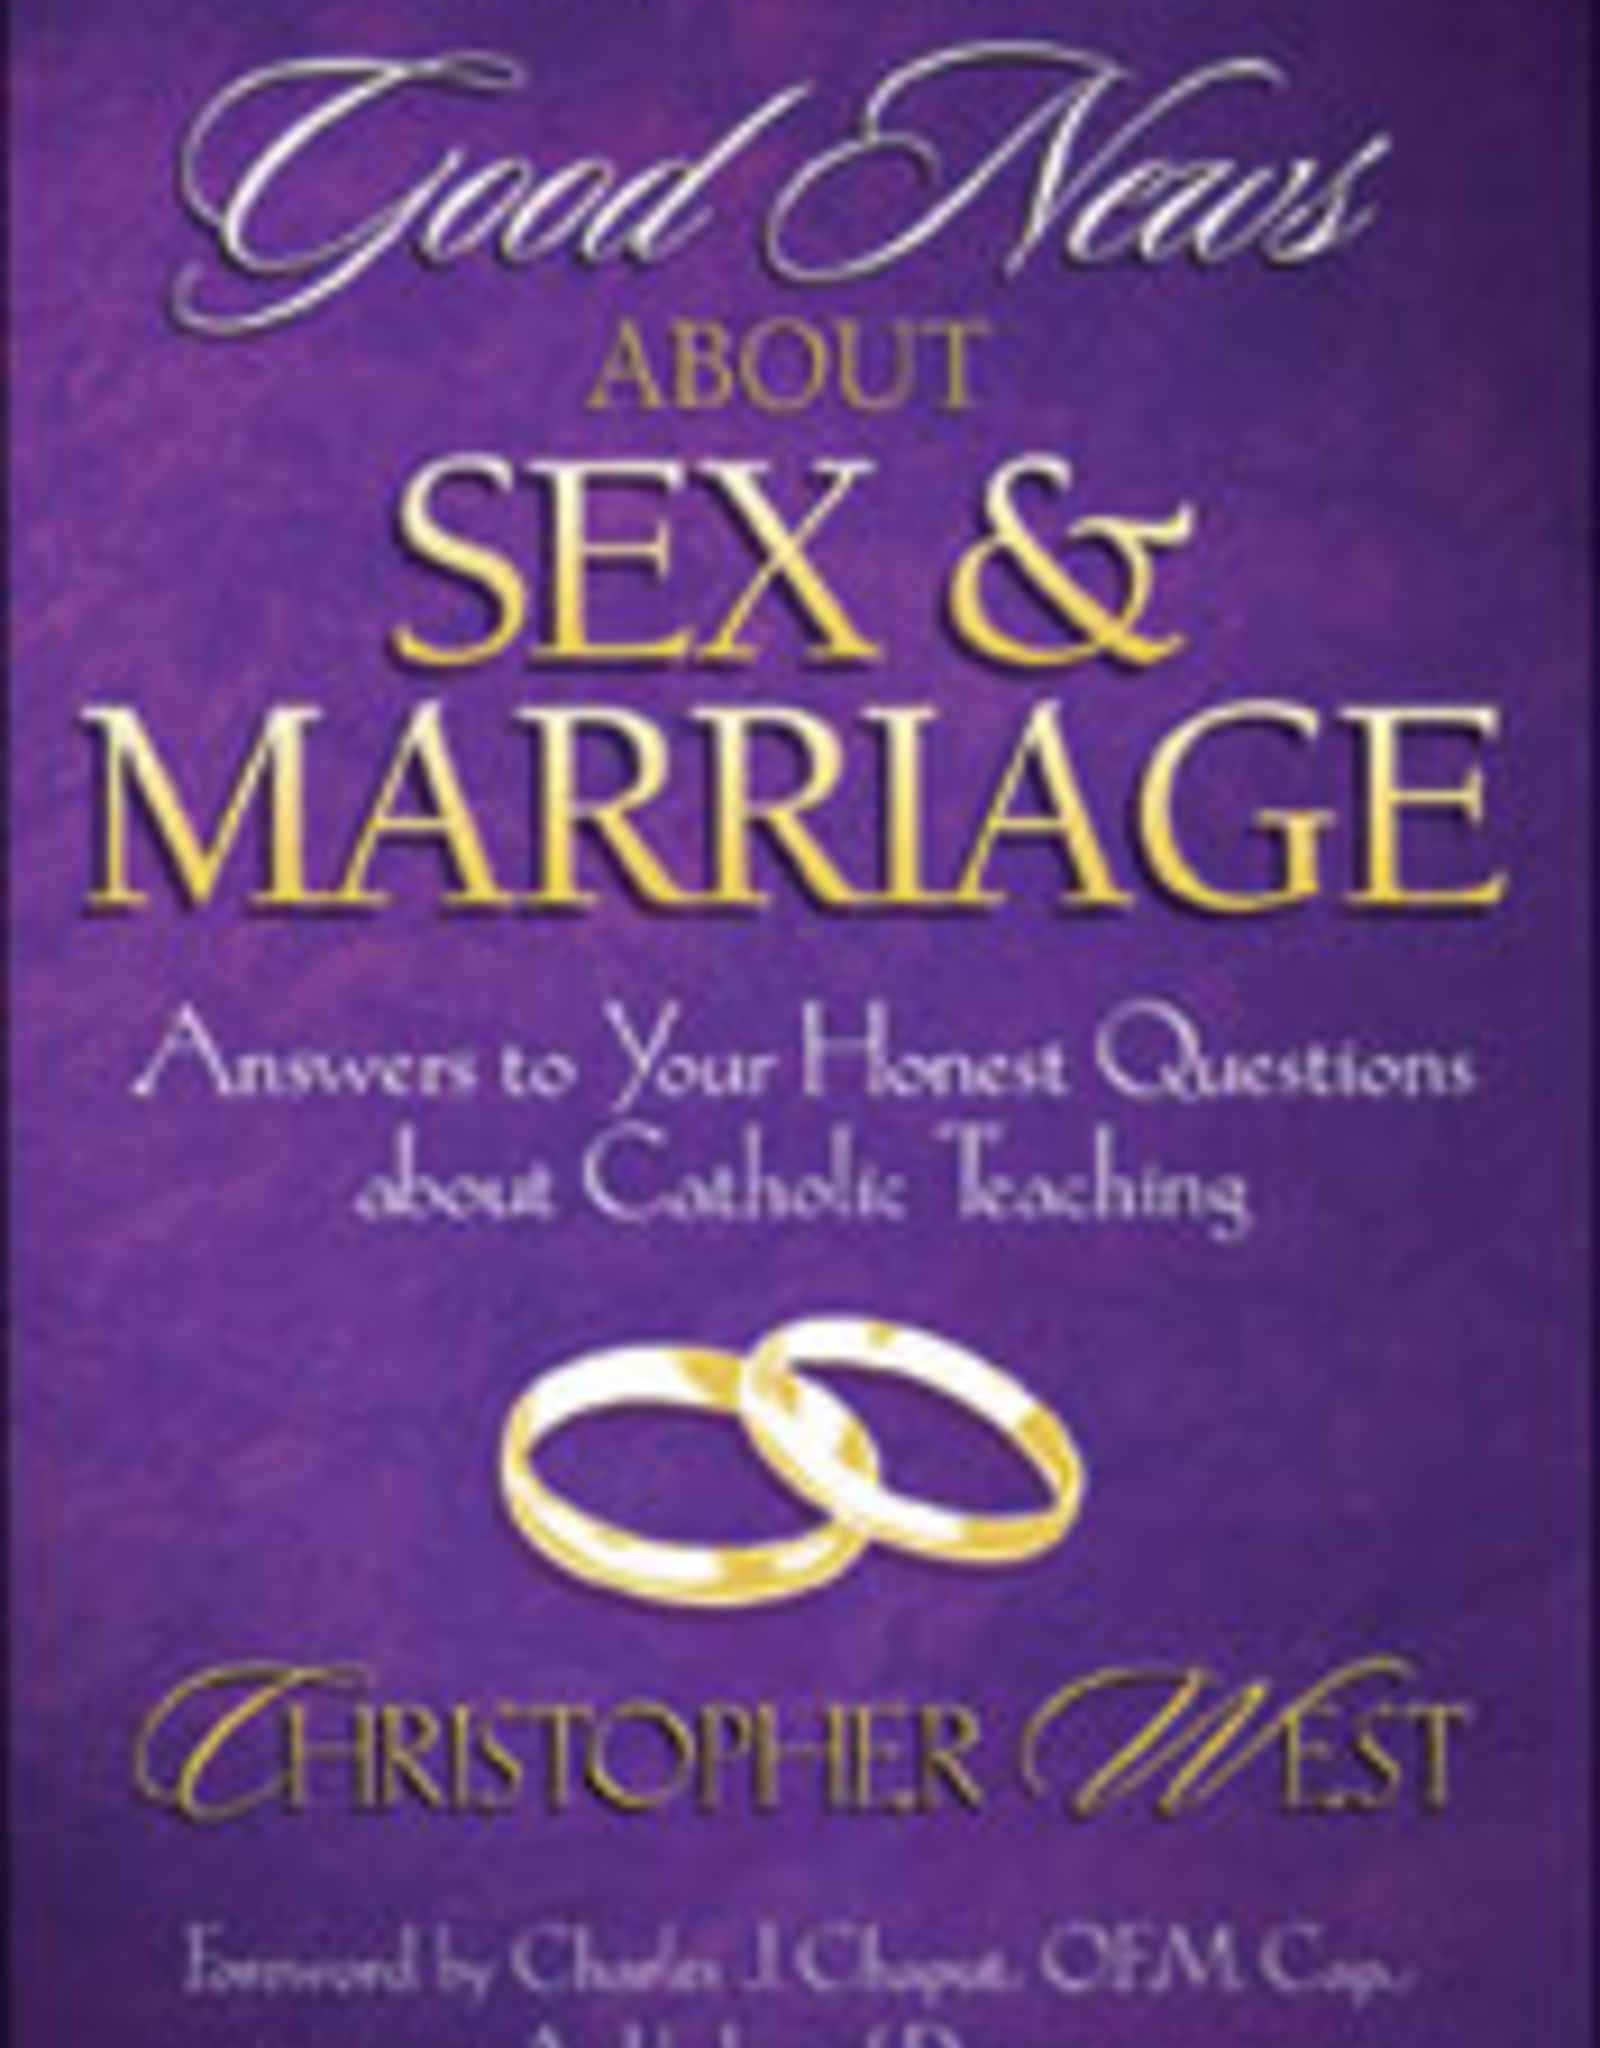 Franciscan Media Good News About Sex & Marriage: Answers to Your Honest Questions about Catholic Teaching, by Christopher West (paperback)